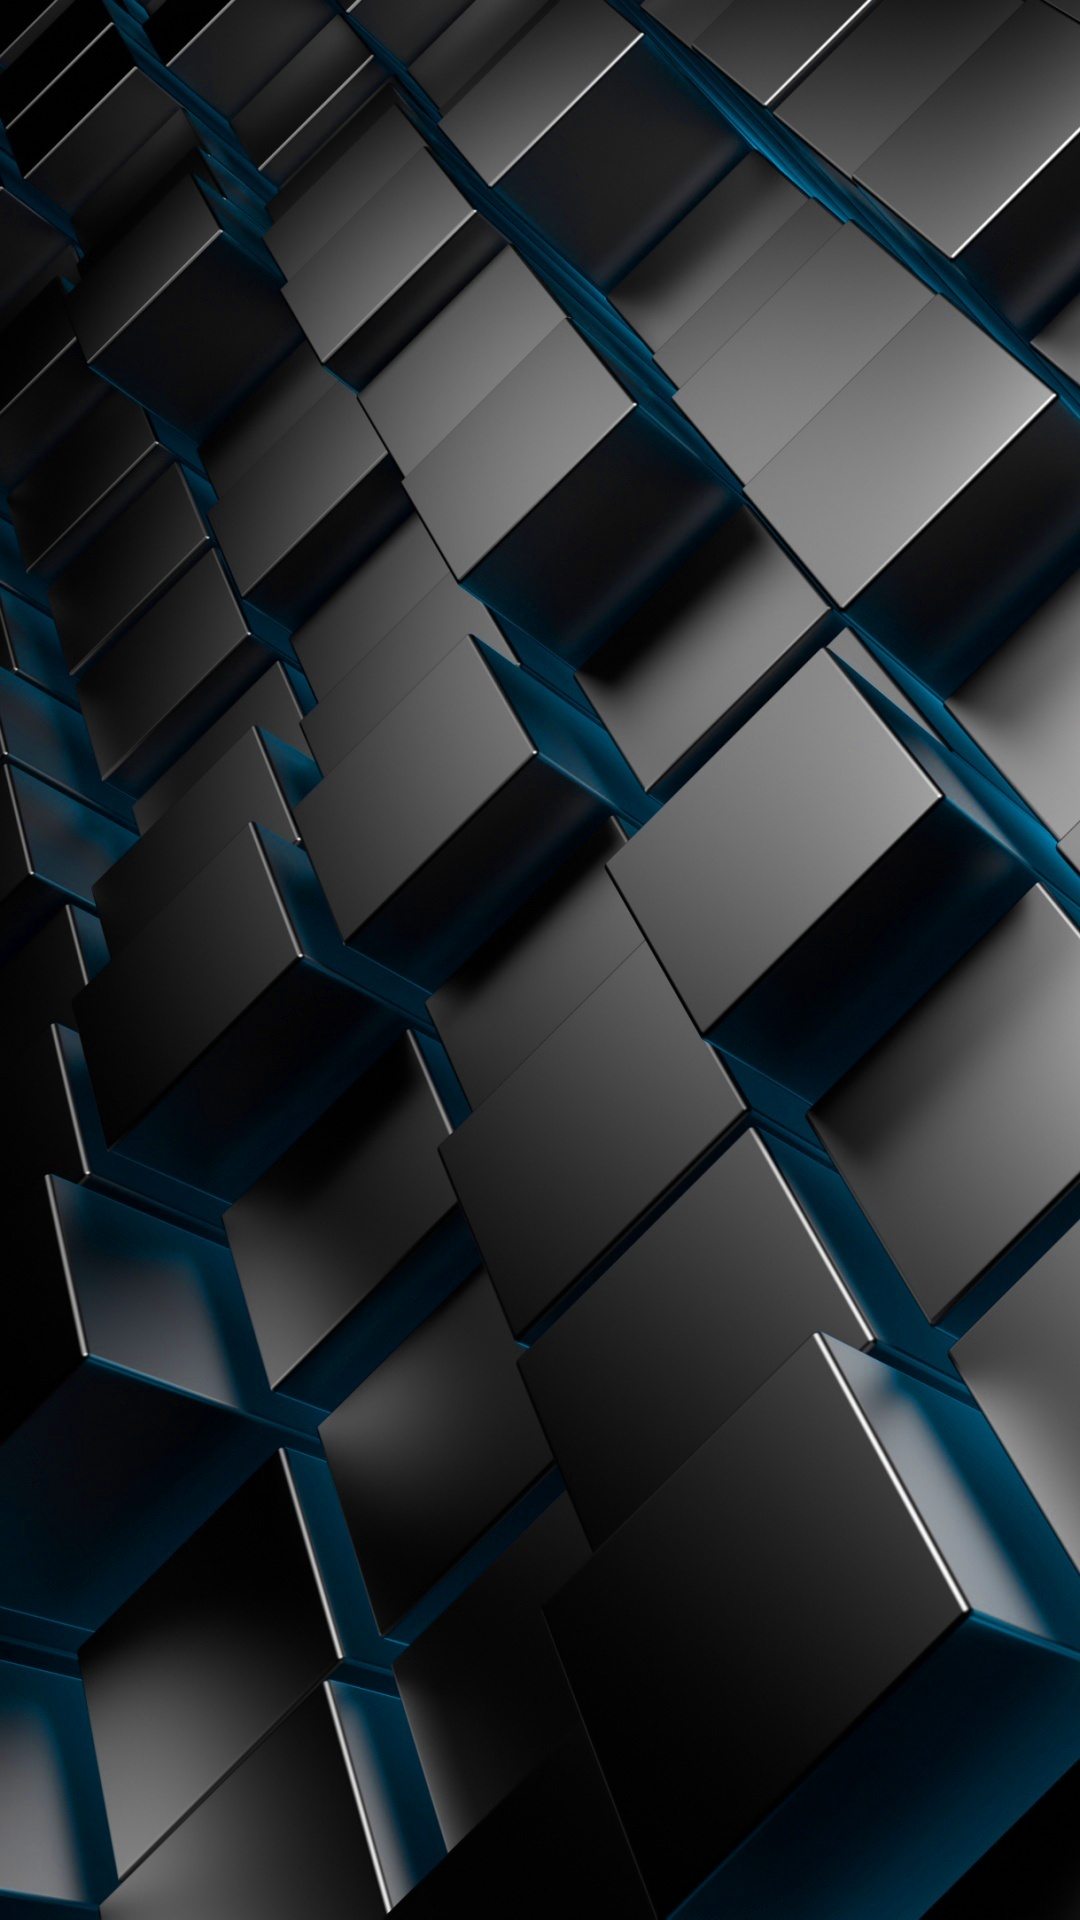 3D Metal Cubes Blue Android wallpaper   Android HD wallpapers